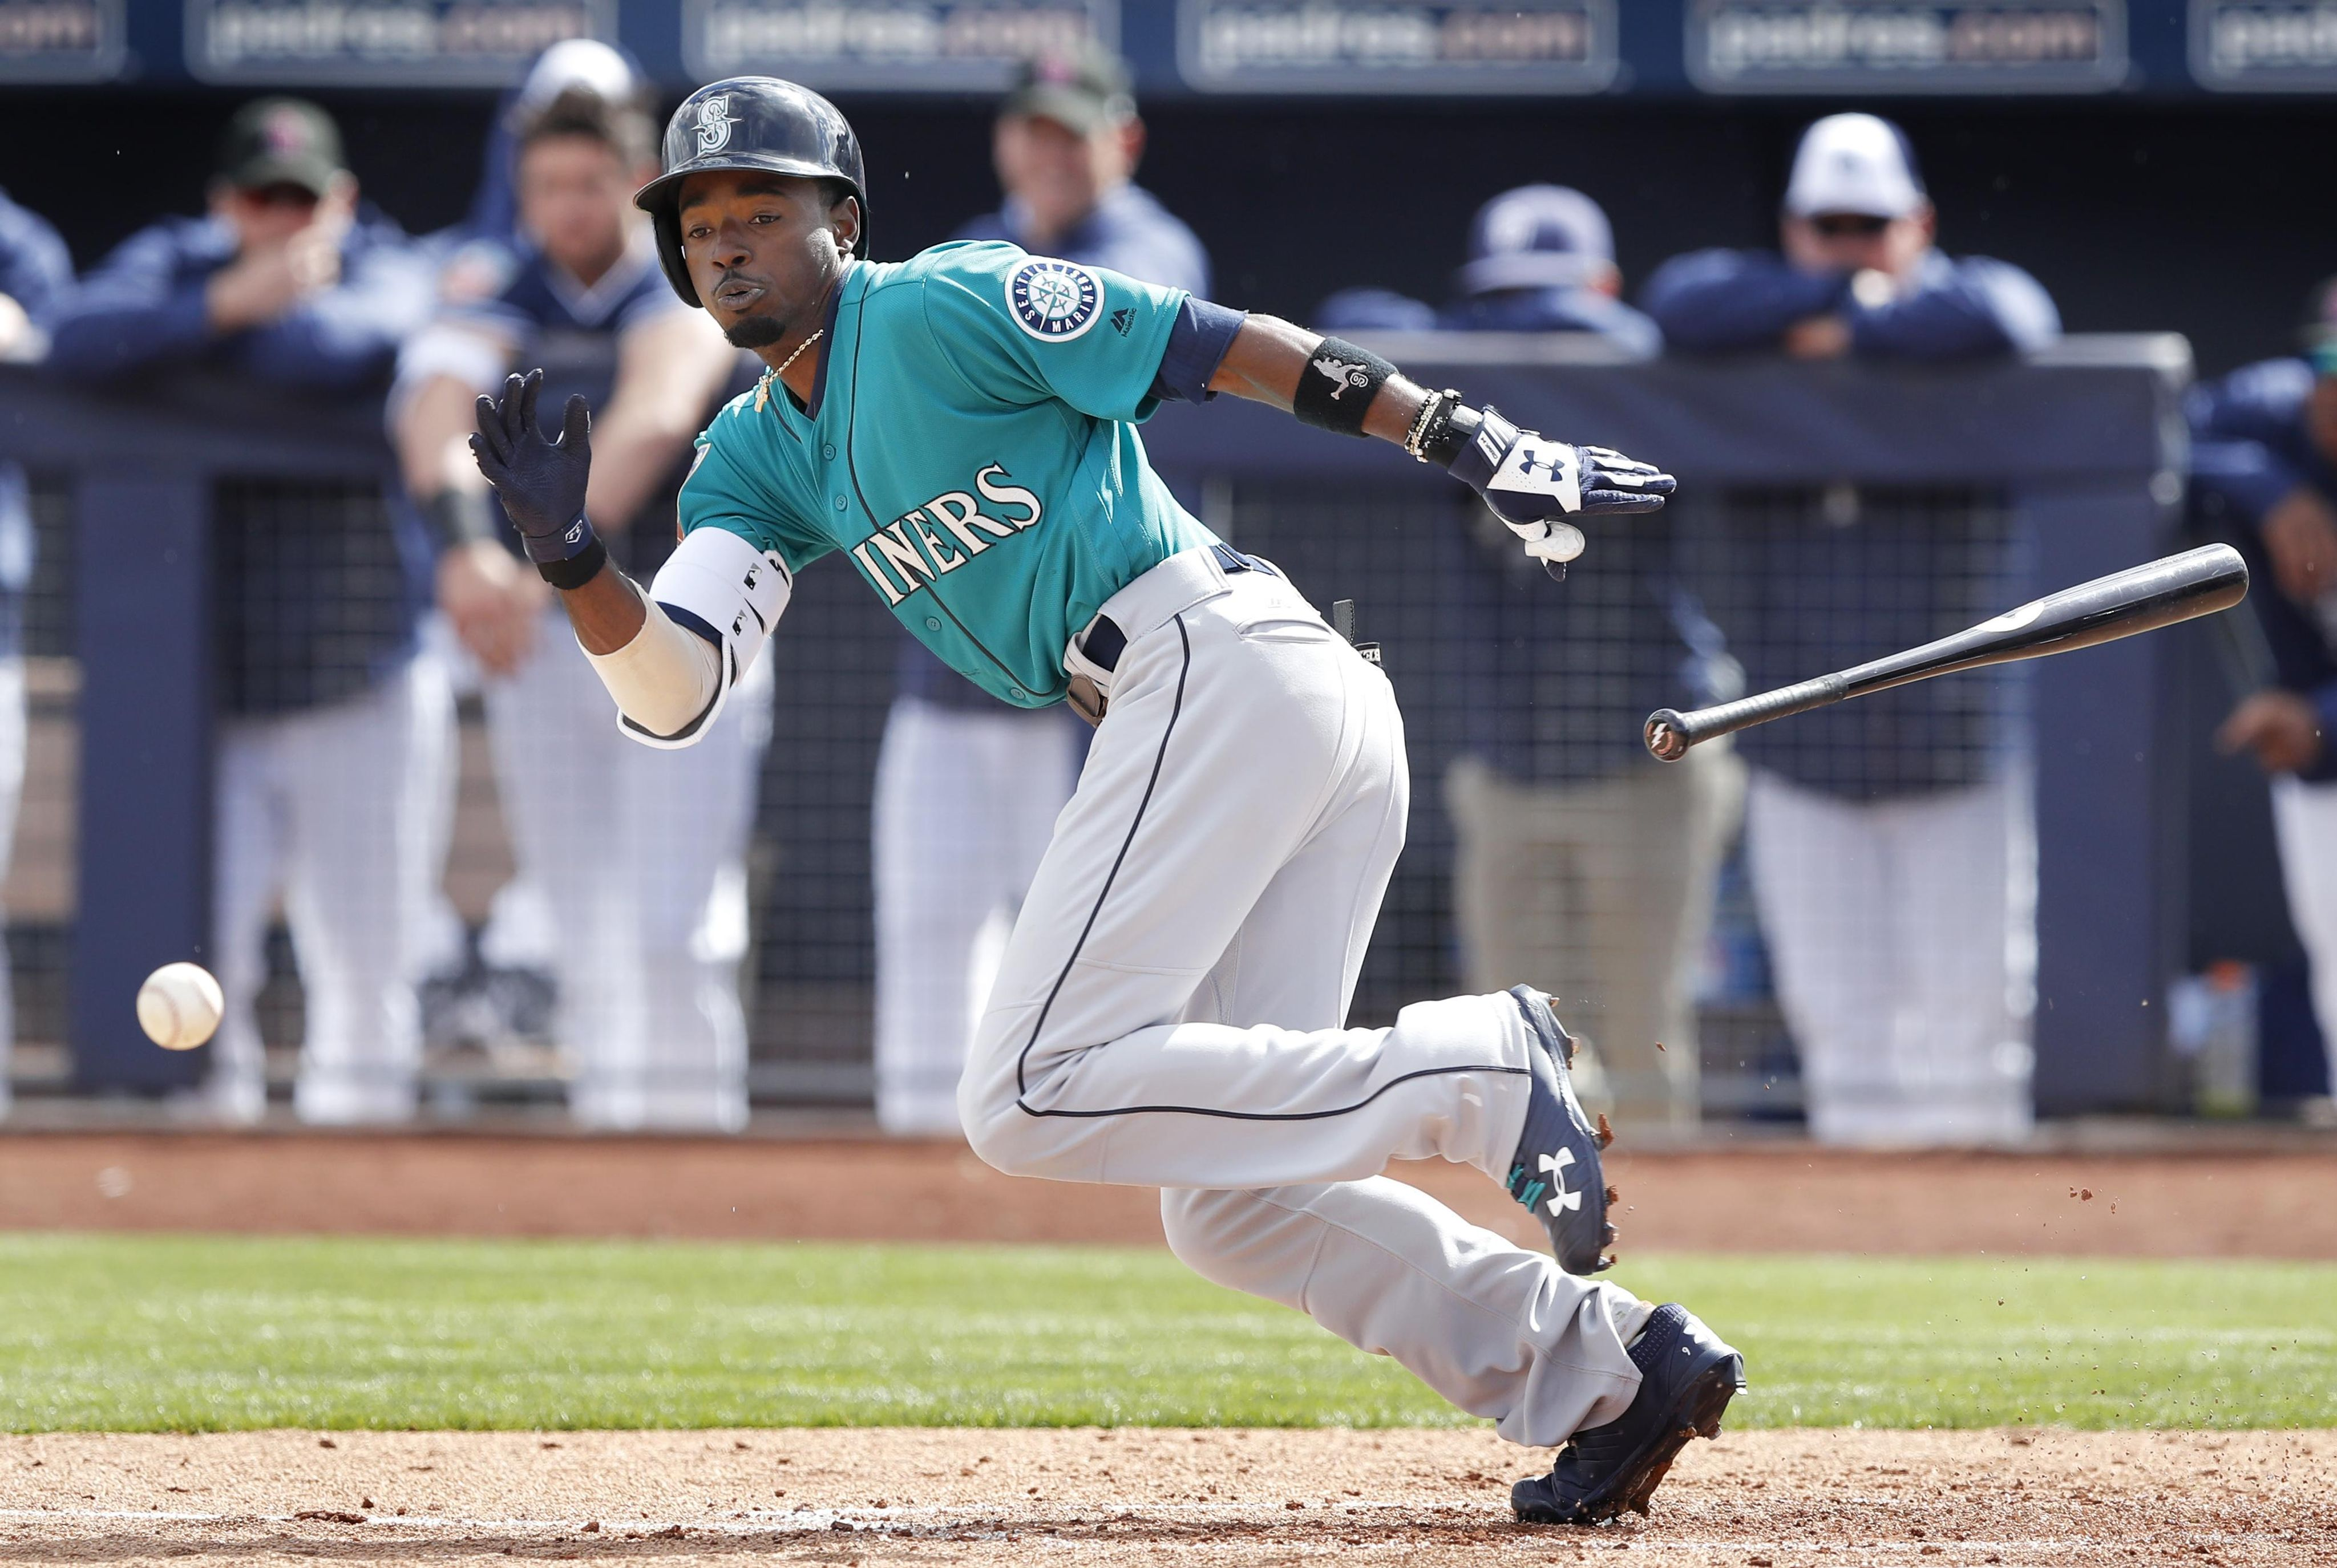 Mariners_preview_baseball_71004_s4096x2749